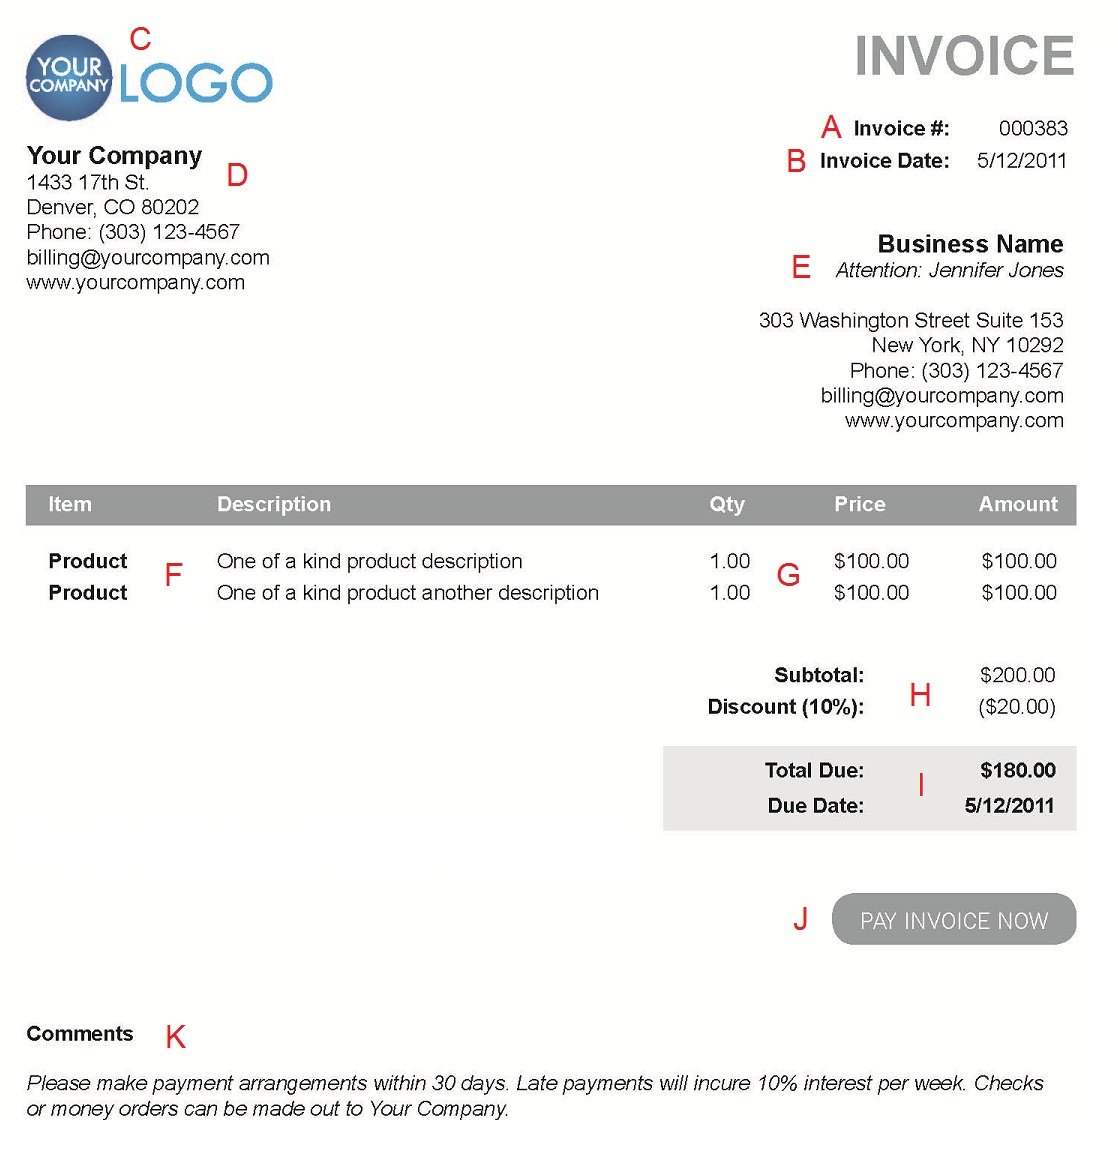 Coolmathgamesus  Fascinating The  Different Sections Of An Electronic Payment Invoice With Likable A  With Endearing Excel Invoices Templates Free Also App Invoice In Addition Free Download Tax Invoice Format In Excel And Raising An Invoice As Well As Invoice In English Additionally Against Proforma Invoice From Paysimplecom With Coolmathgamesus  Likable The  Different Sections Of An Electronic Payment Invoice With Endearing A  And Fascinating Excel Invoices Templates Free Also App Invoice In Addition Free Download Tax Invoice Format In Excel From Paysimplecom